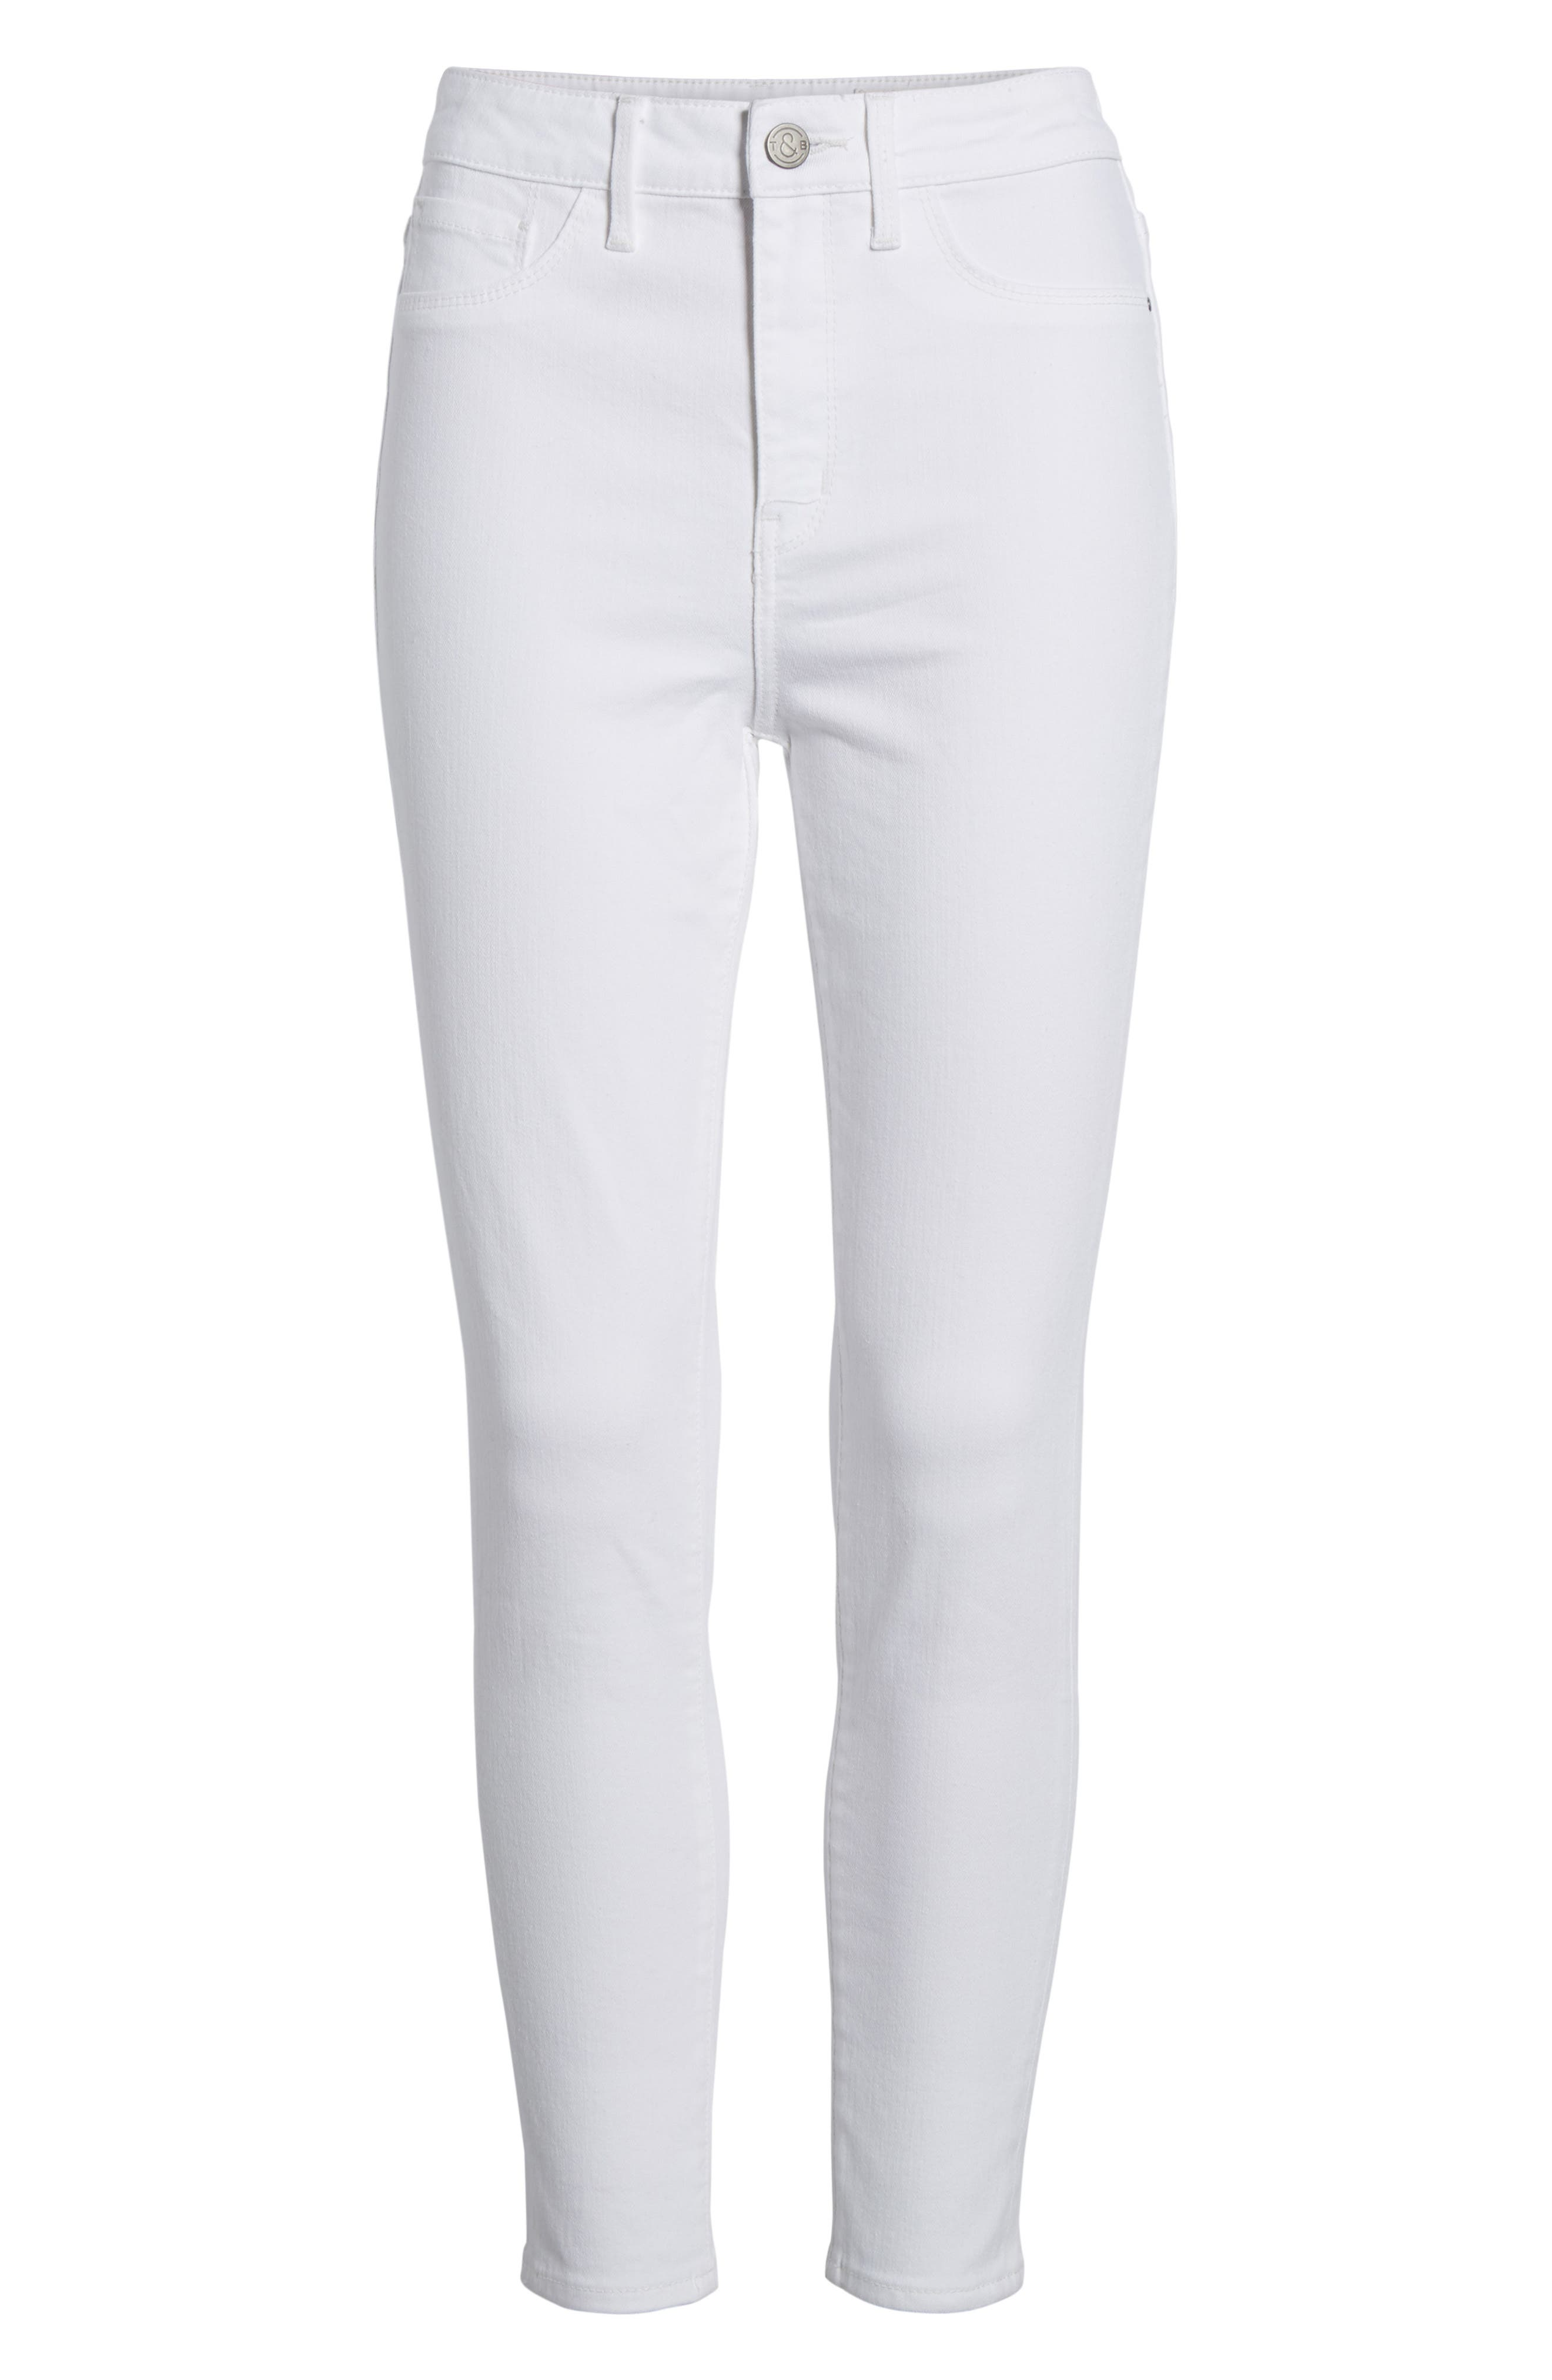 Charity High Waist Crop Skinny Jeans,                             Alternate thumbnail 7, color,                             100